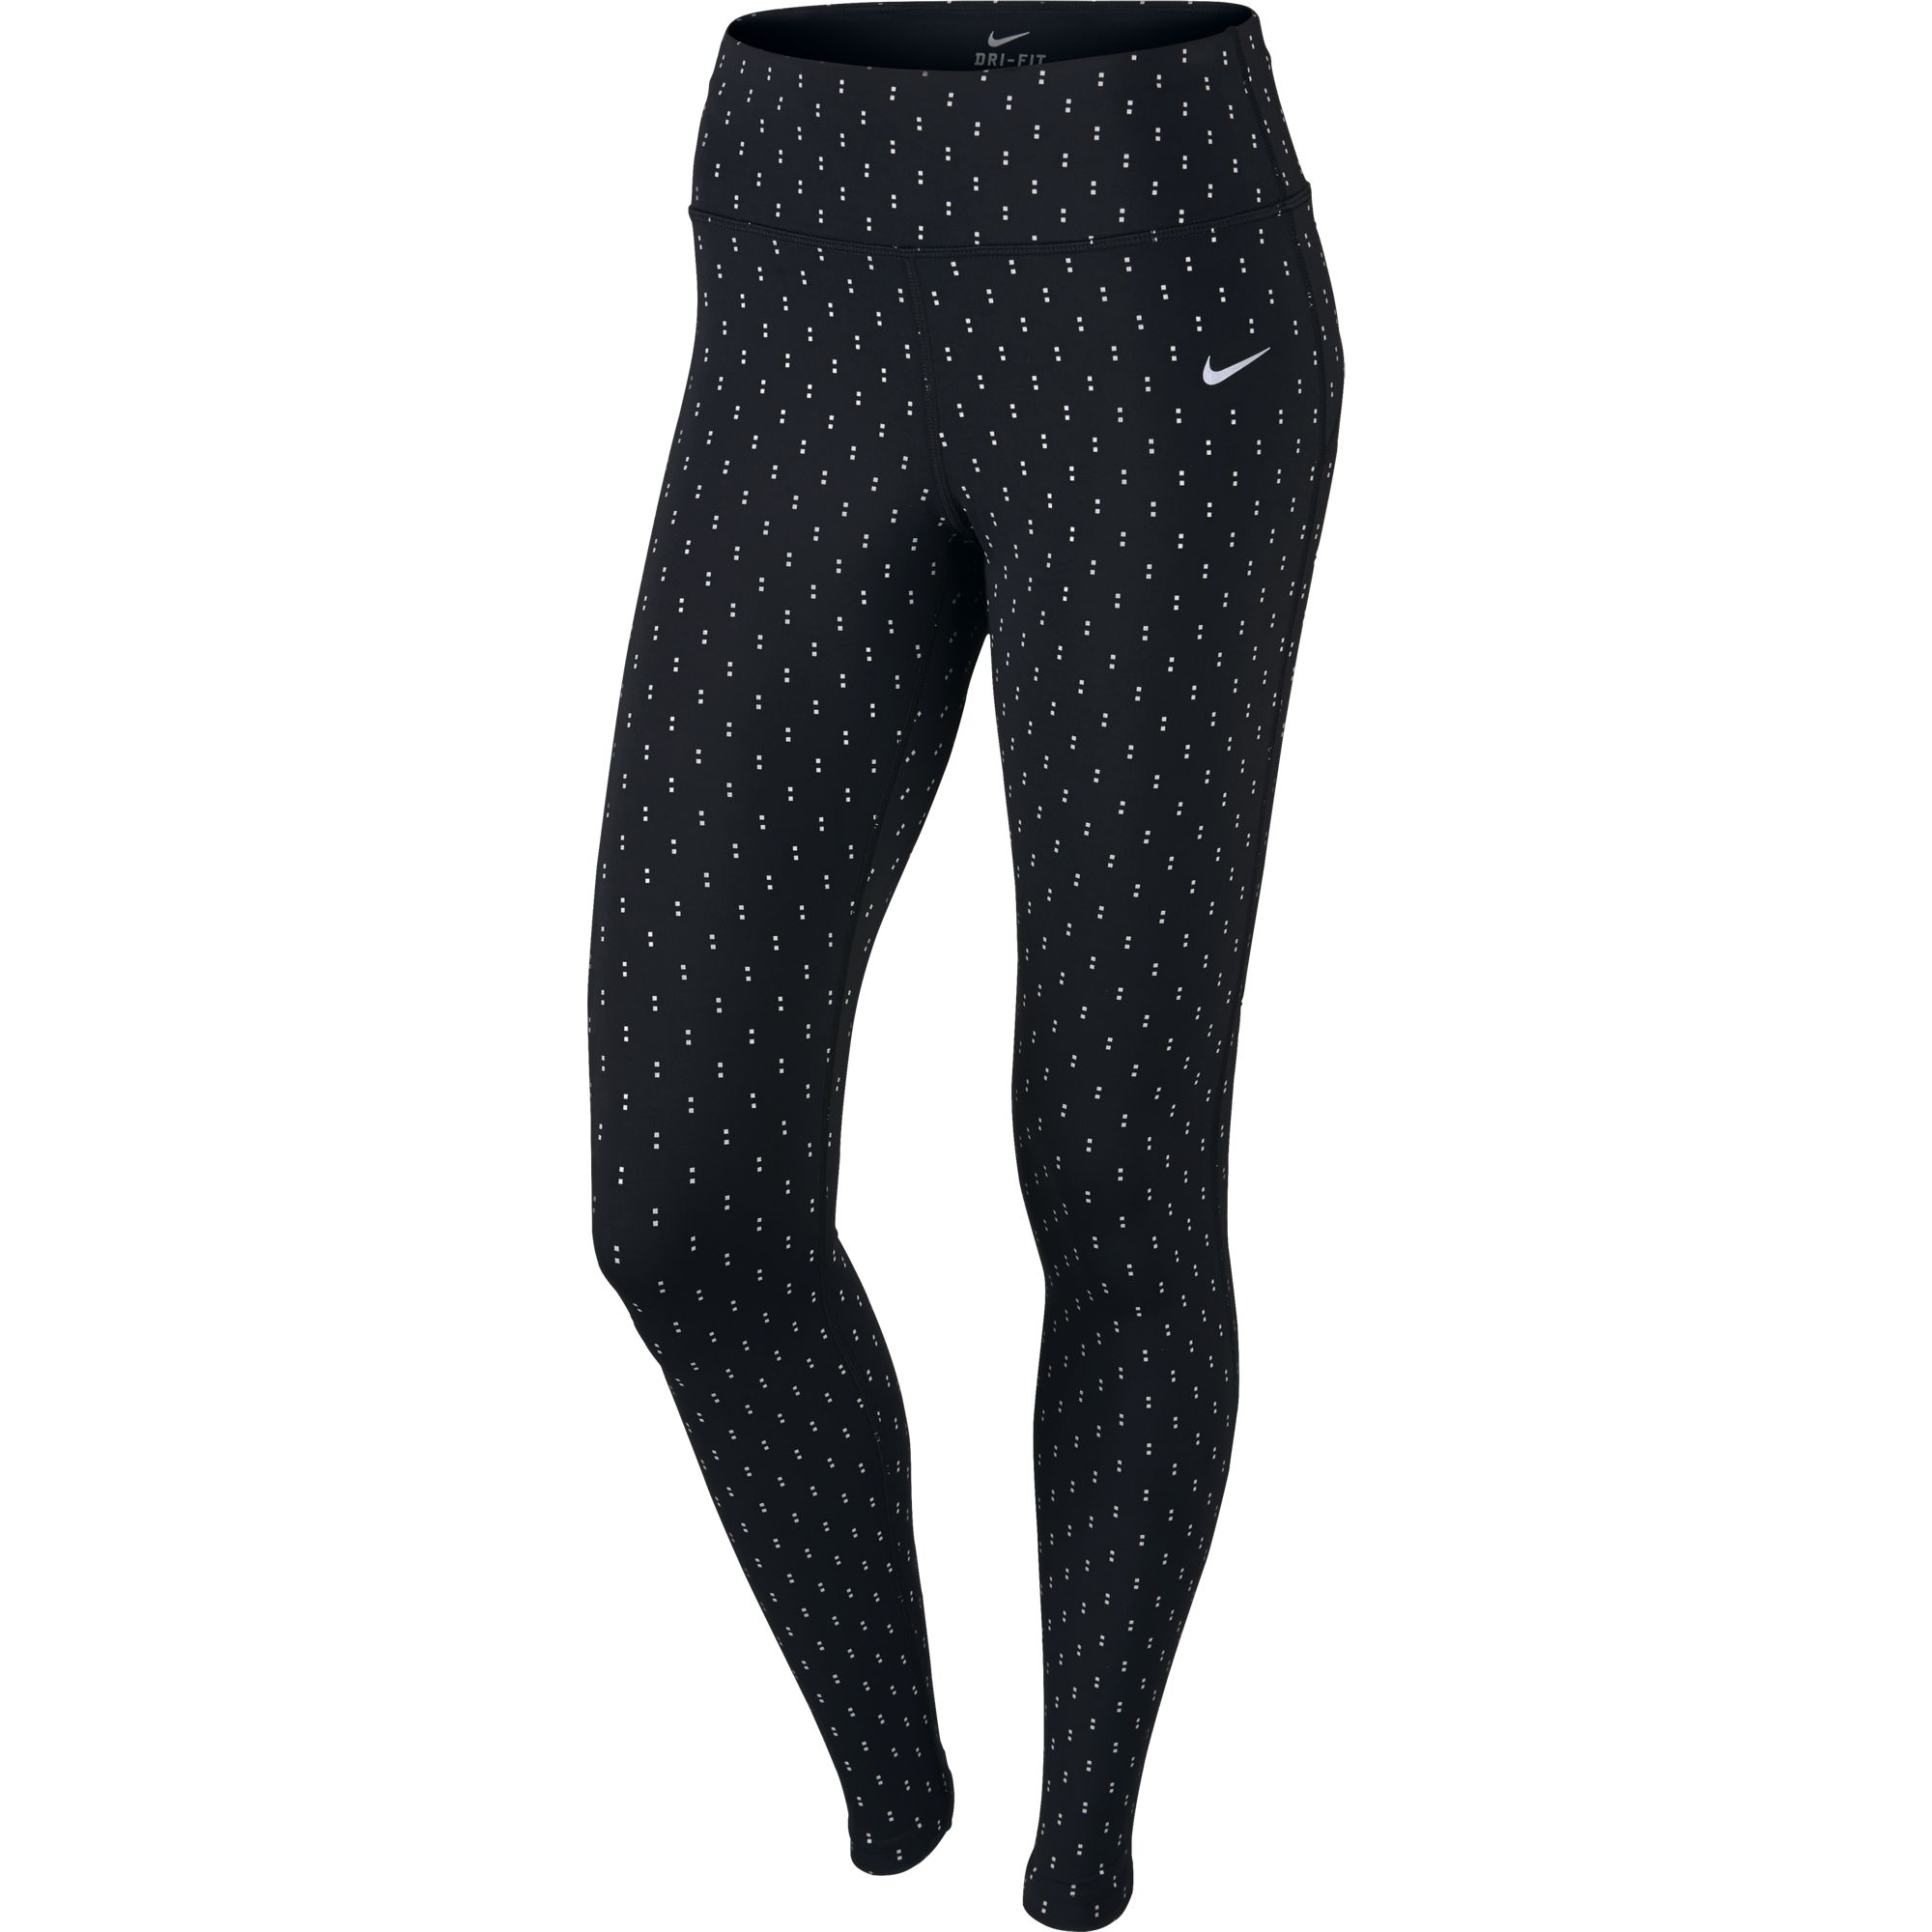 | Nike Women's Epic Lux Flash Tight (HO15) | Tights